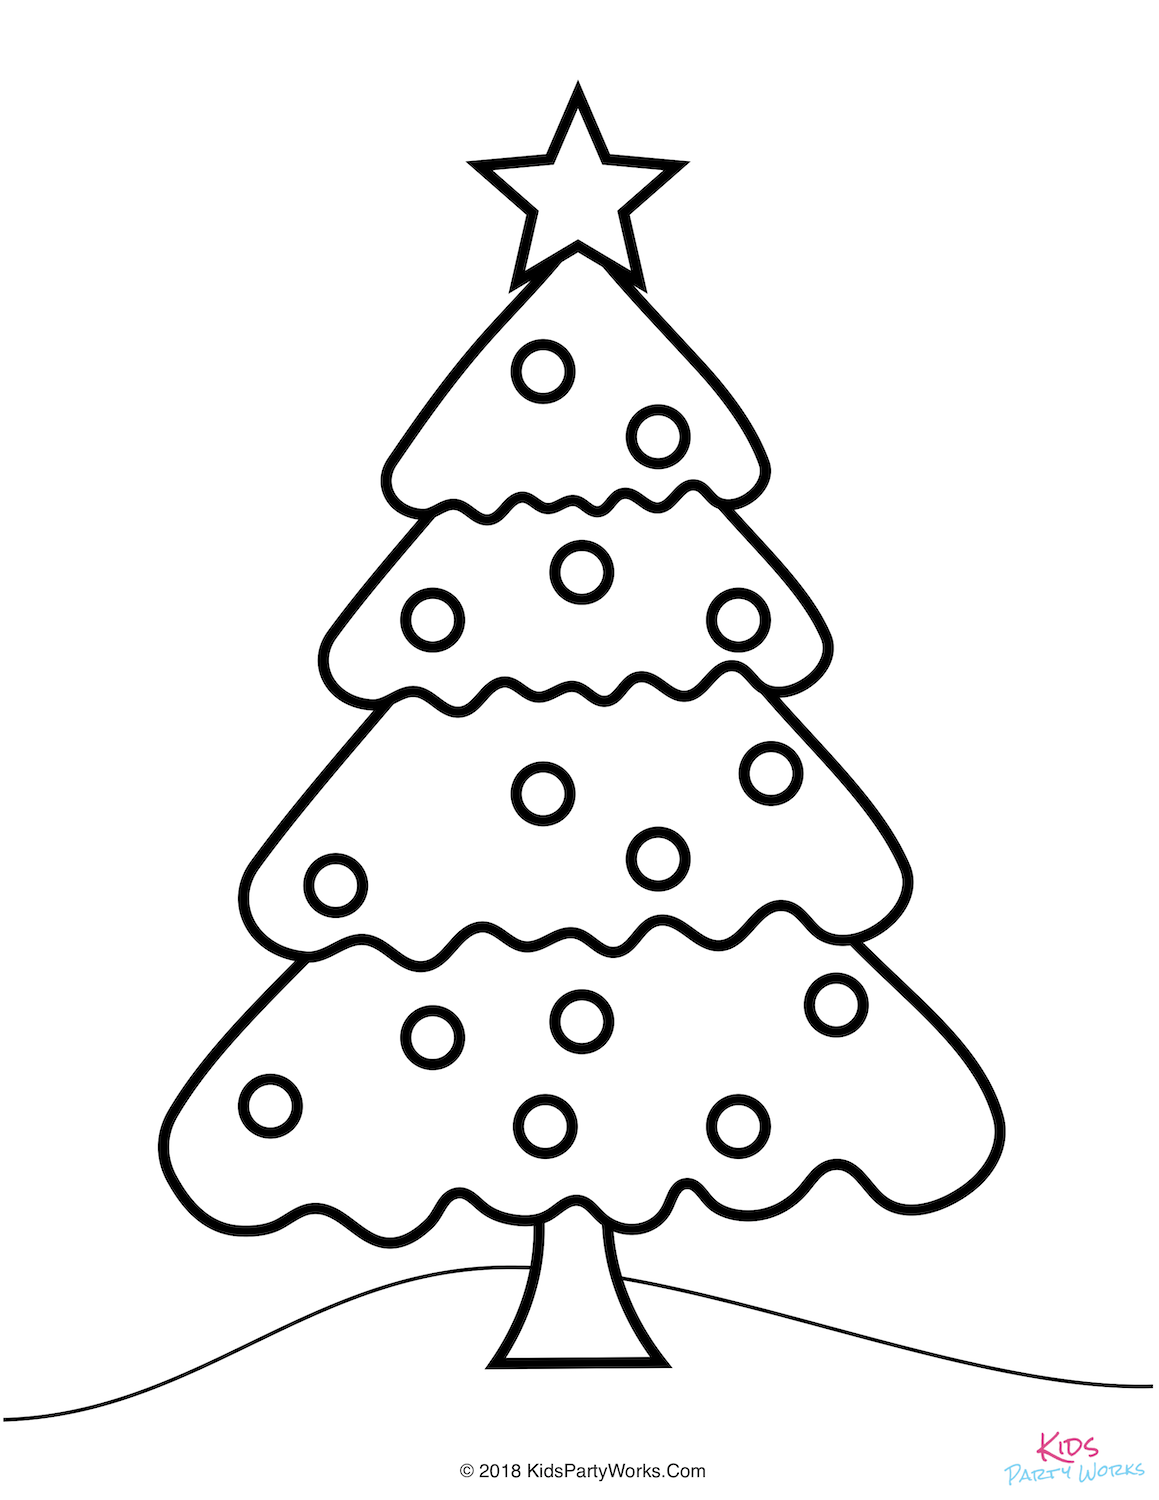 Free Christmas Tree Coloring Page In 2020 Christmas Tree Coloring Page Tree Coloring Page Christmas Coloring Pages